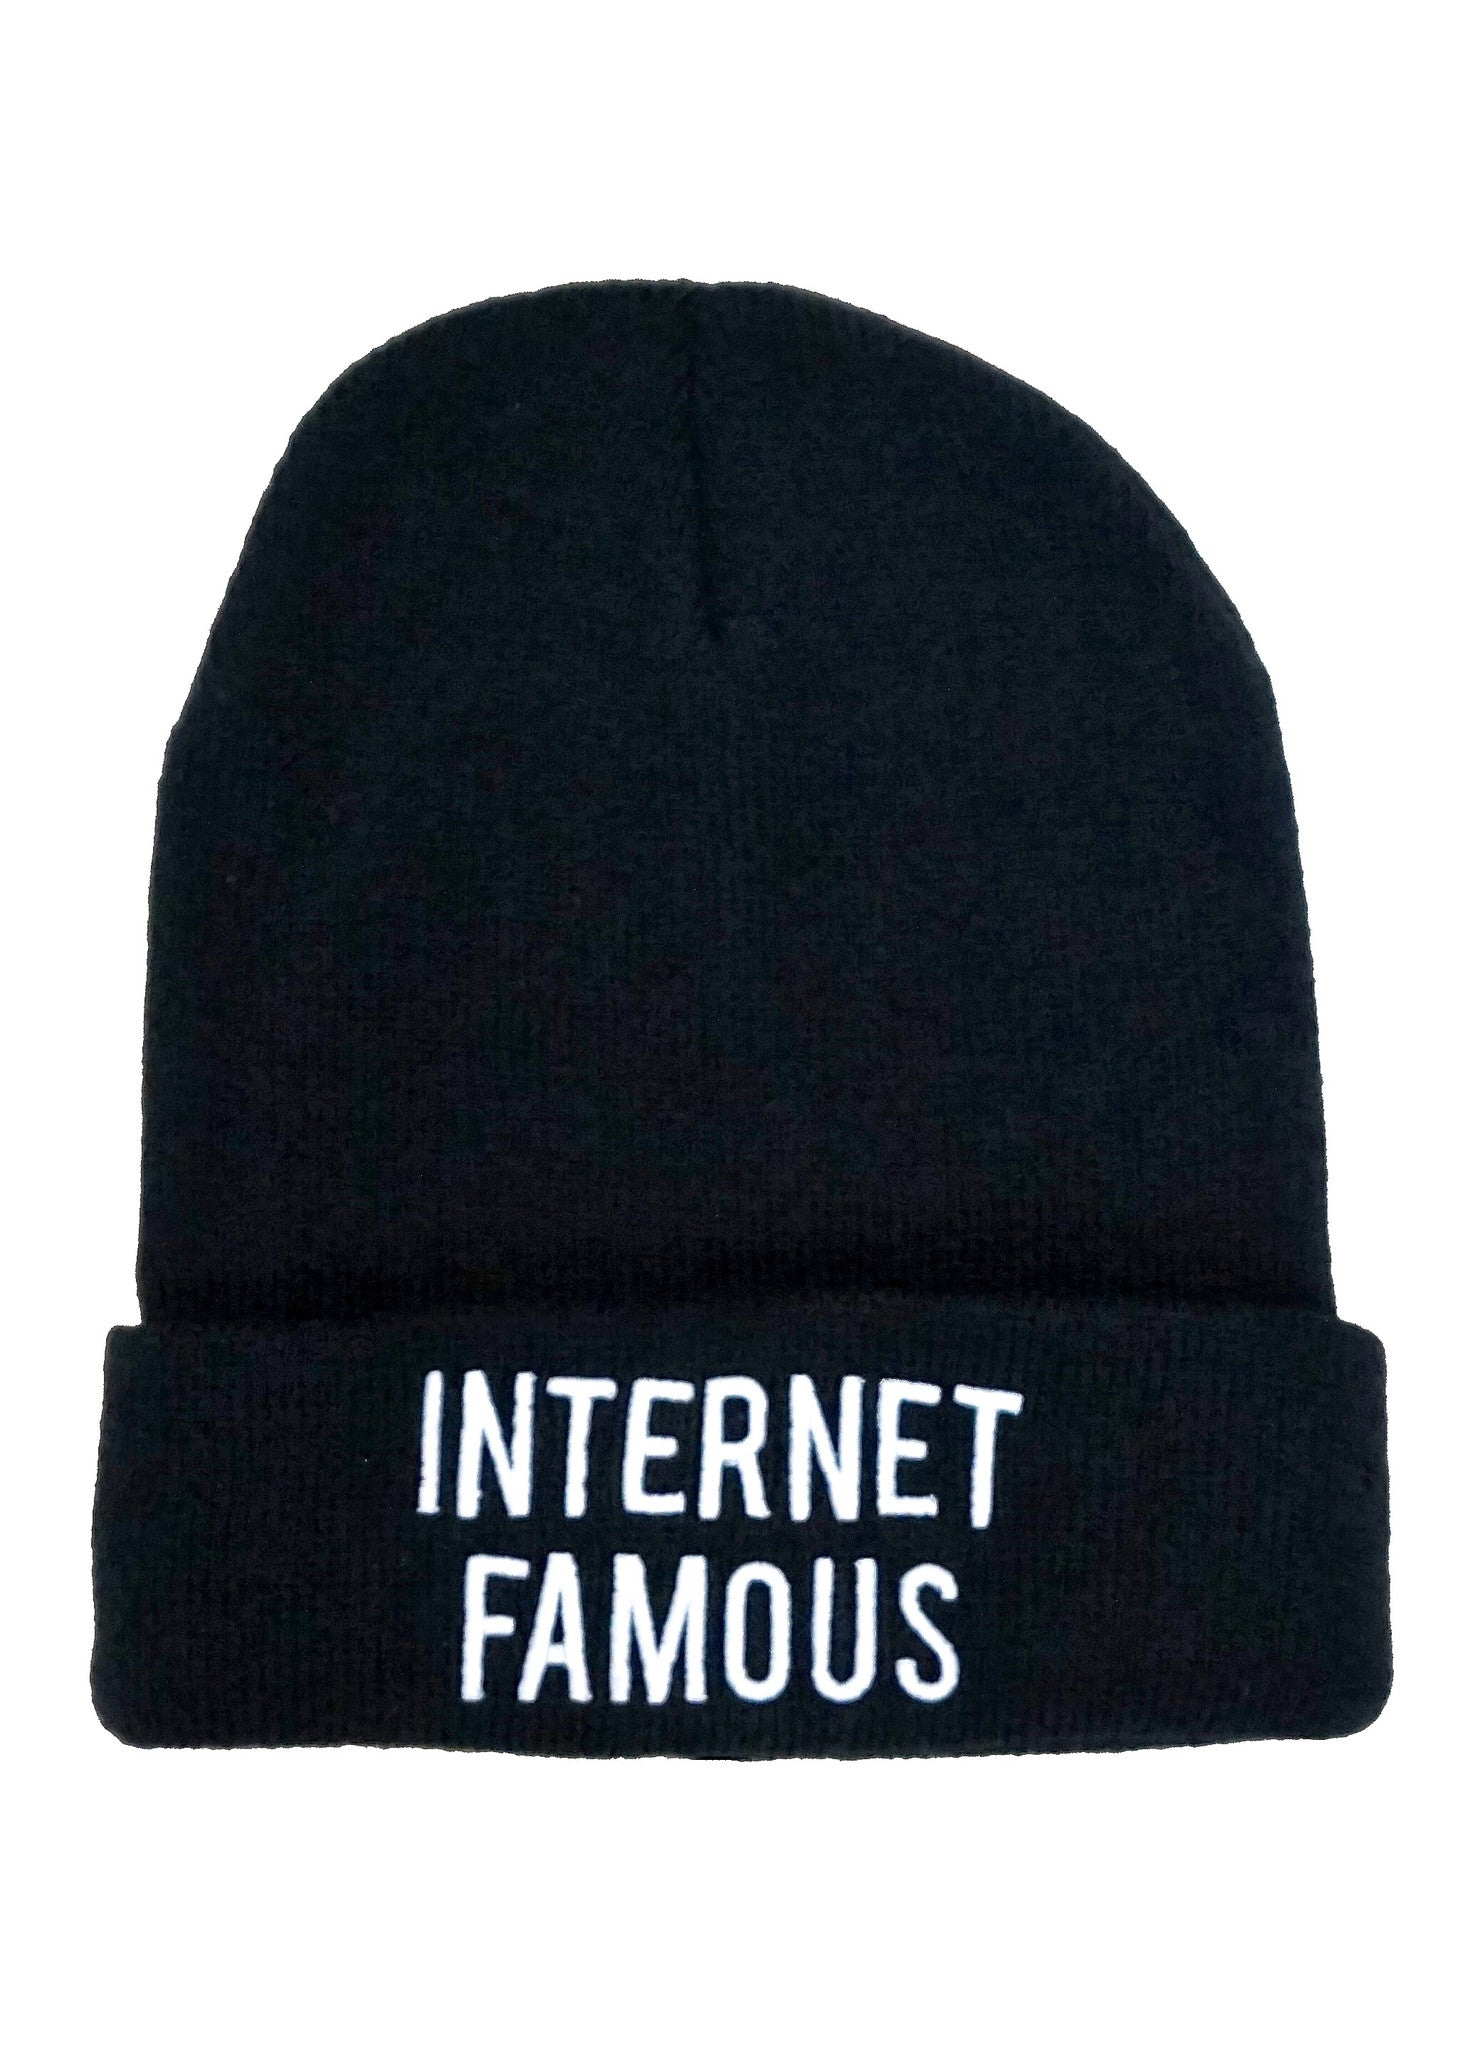 Internet Famous Beanie (SOLD OUT)